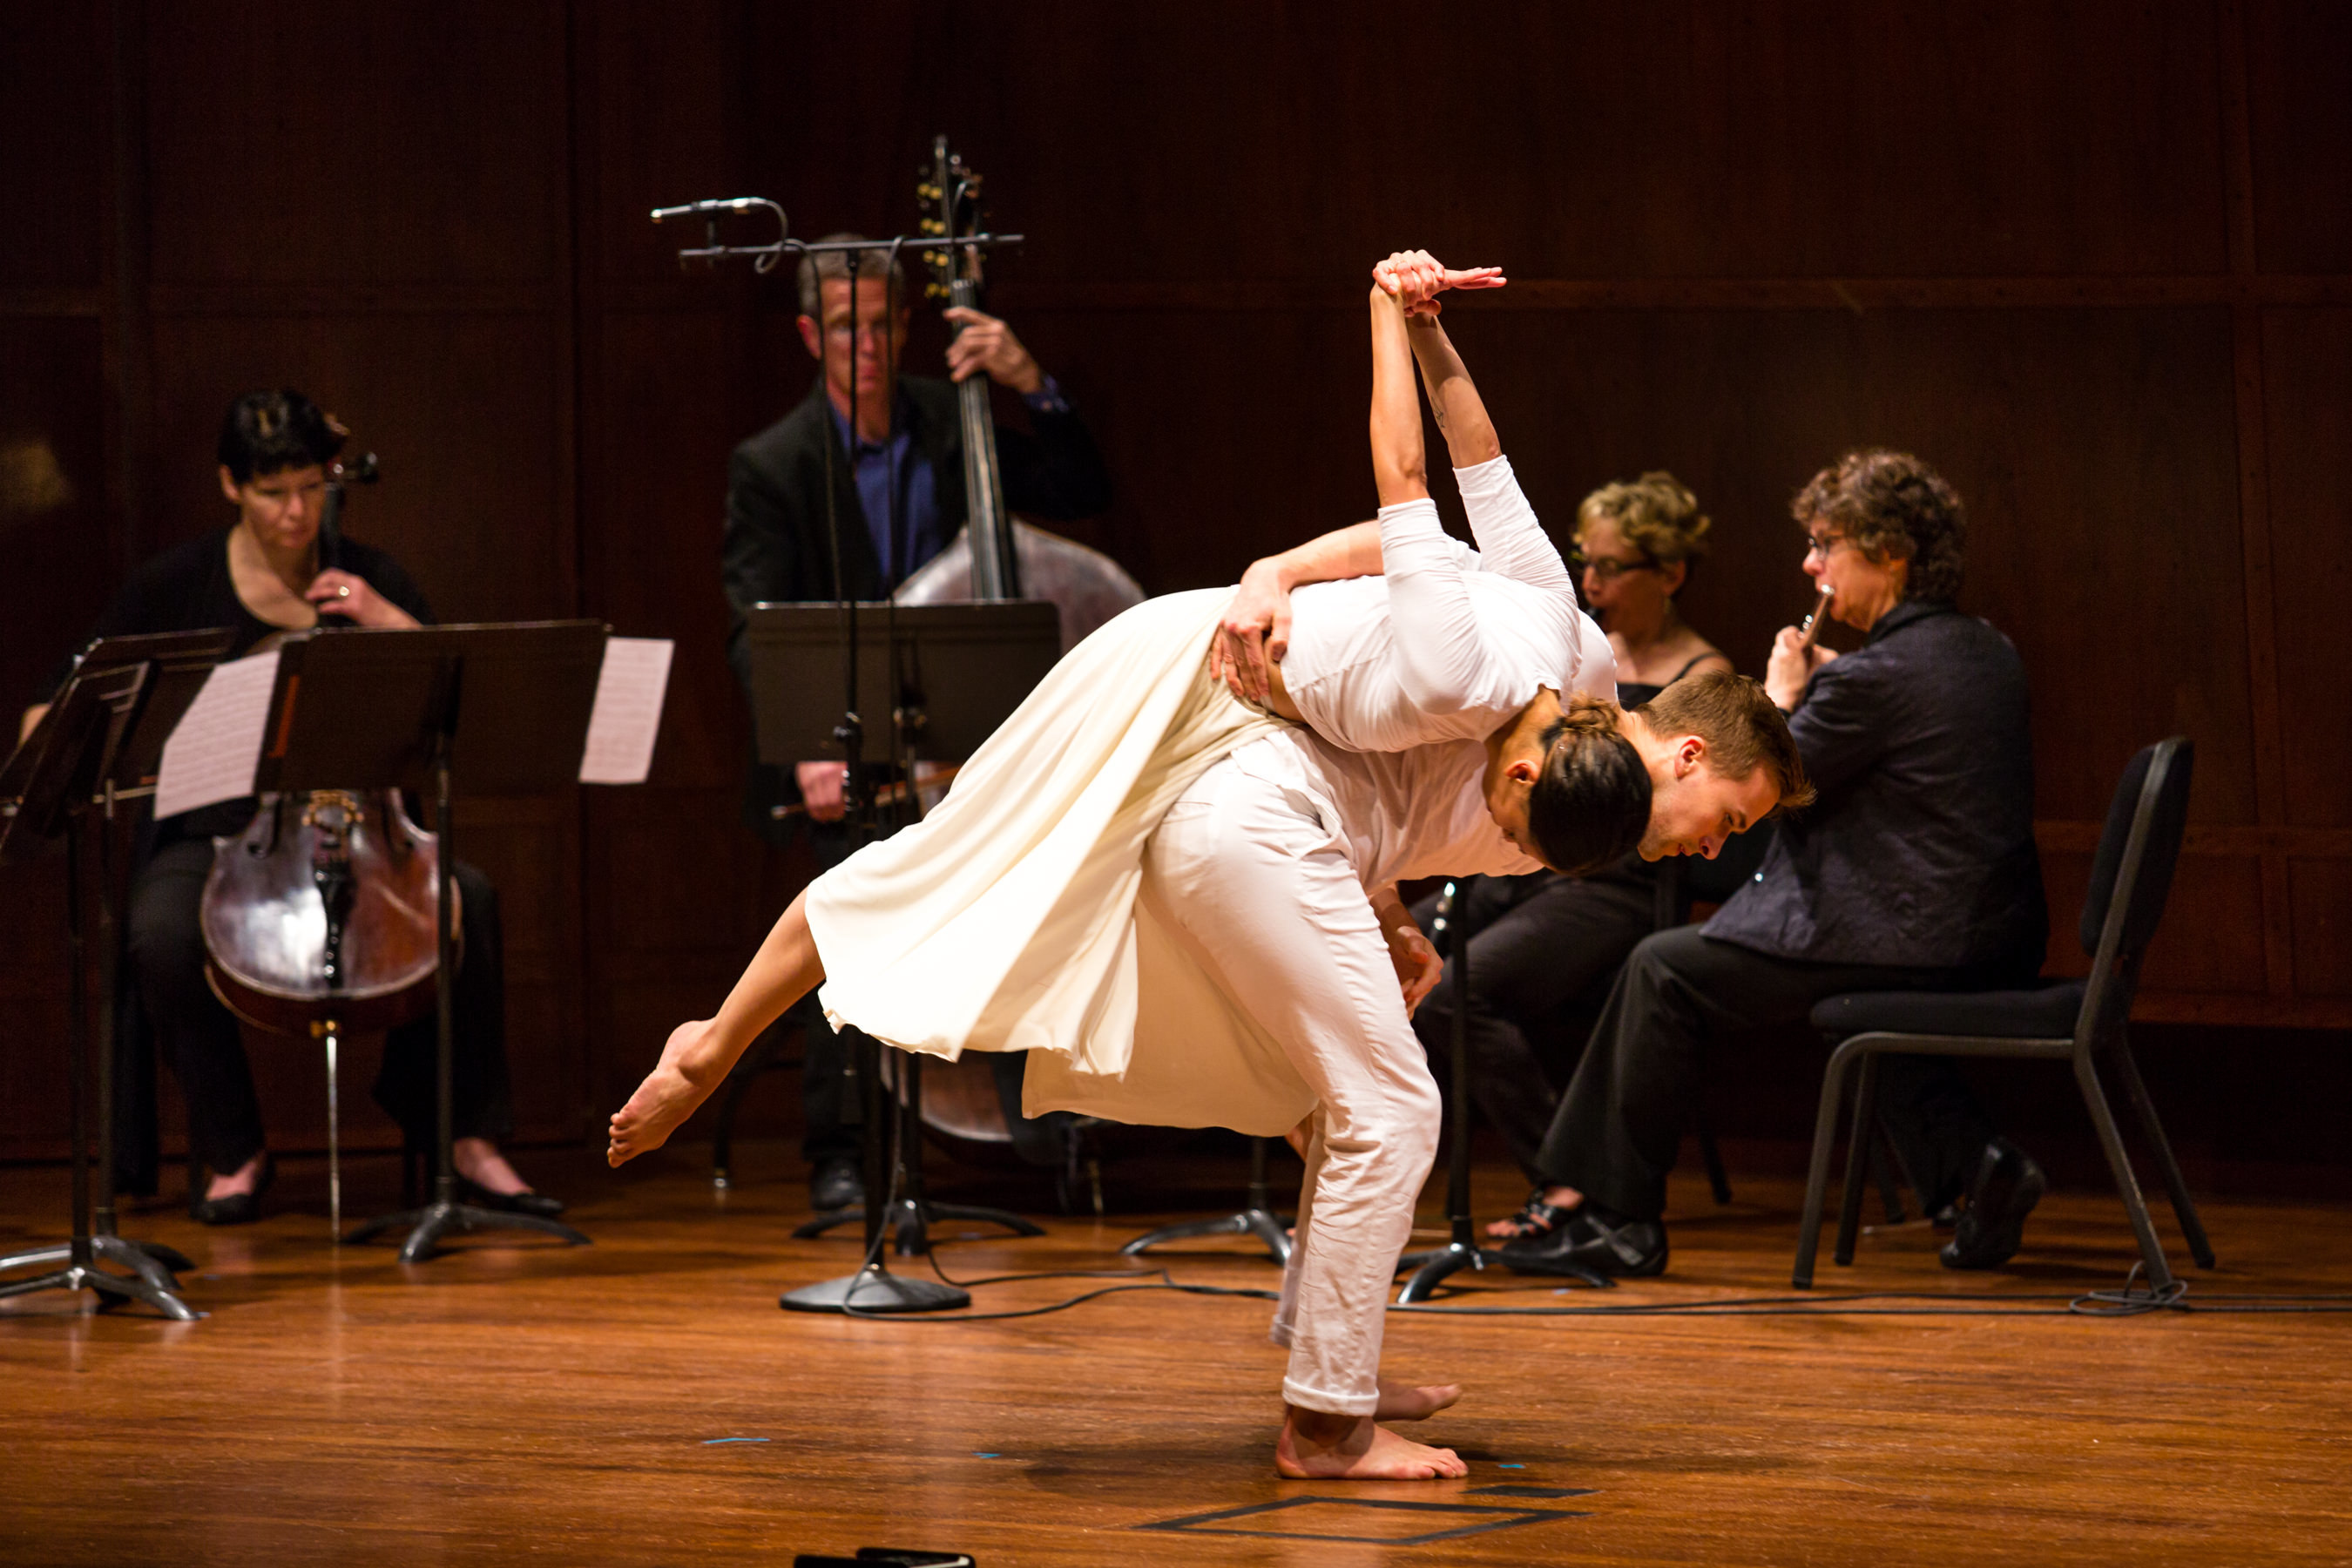 Liane Aung and Karl Watson, Whim W'Him Seattle Contemporary Dance; MOR Ensemble